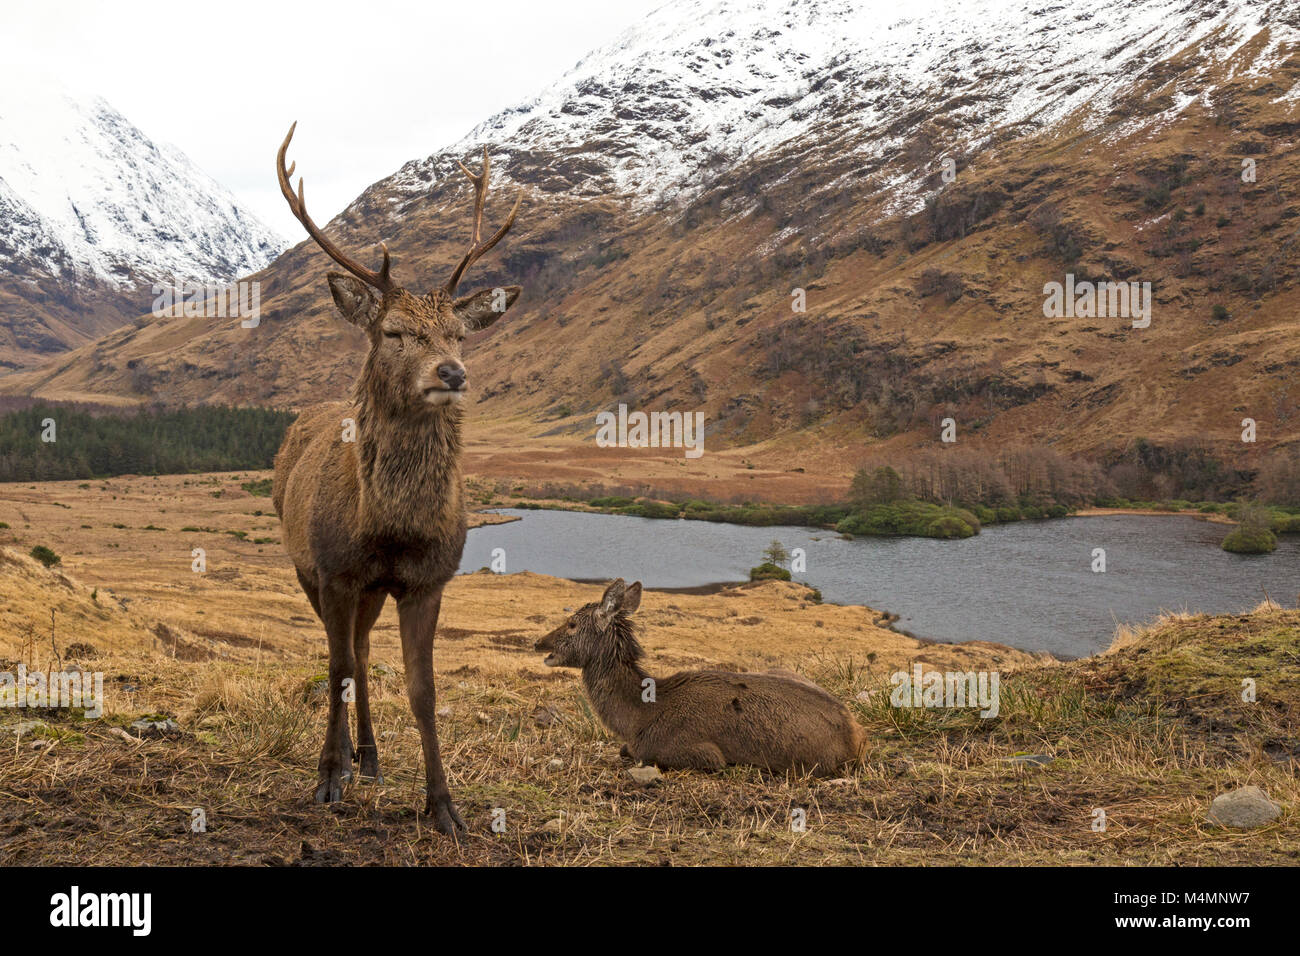 Wild Red Deer, Cervus Elaphus, stag and hind, male and female, in Glen Etive, Scotland, during winter, - Stock Image